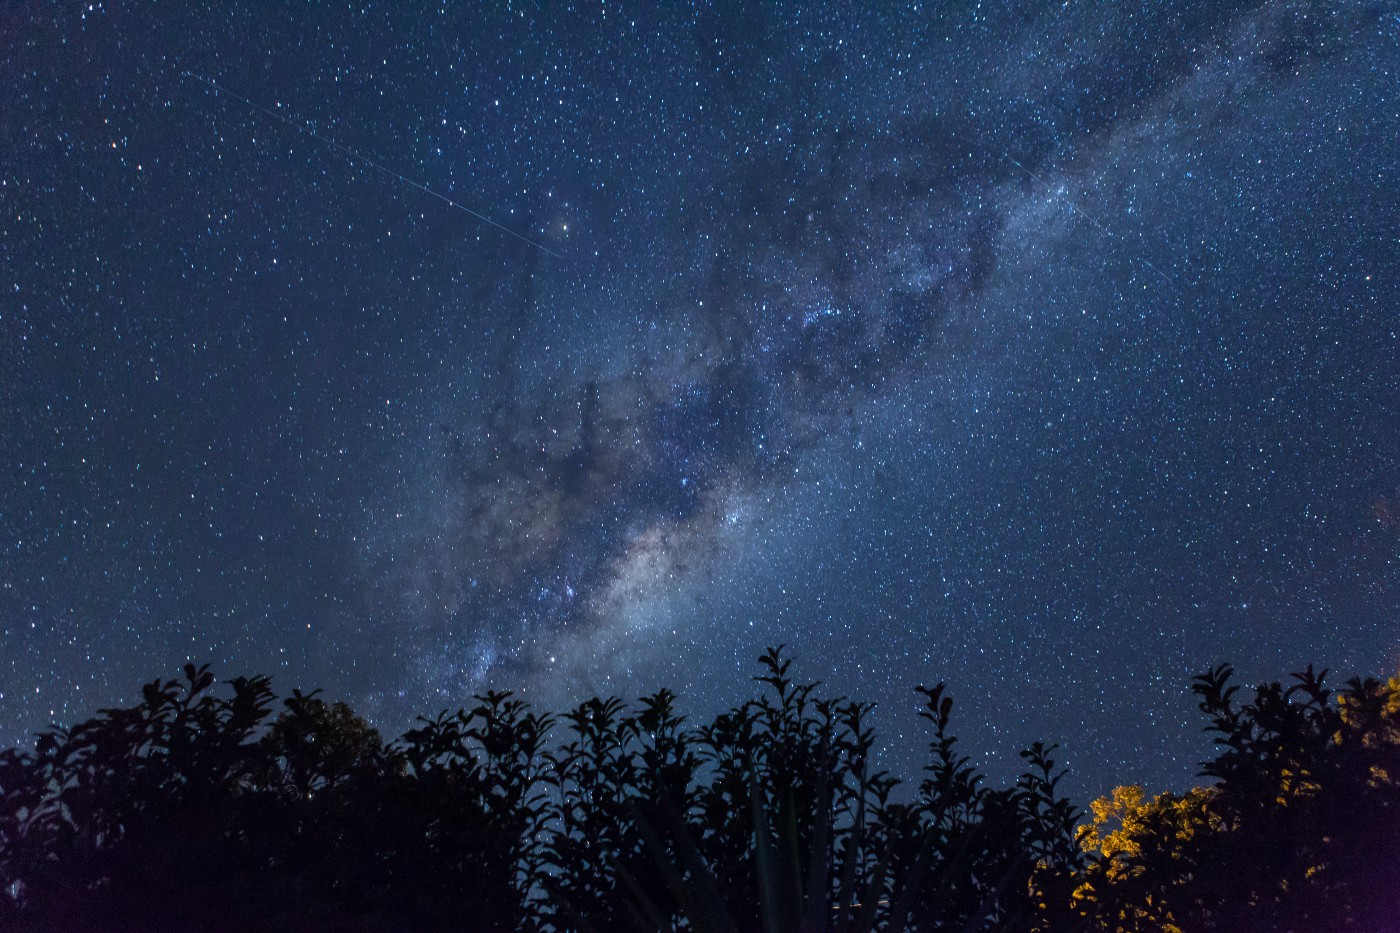 starry night sky above a row of evergreen trees